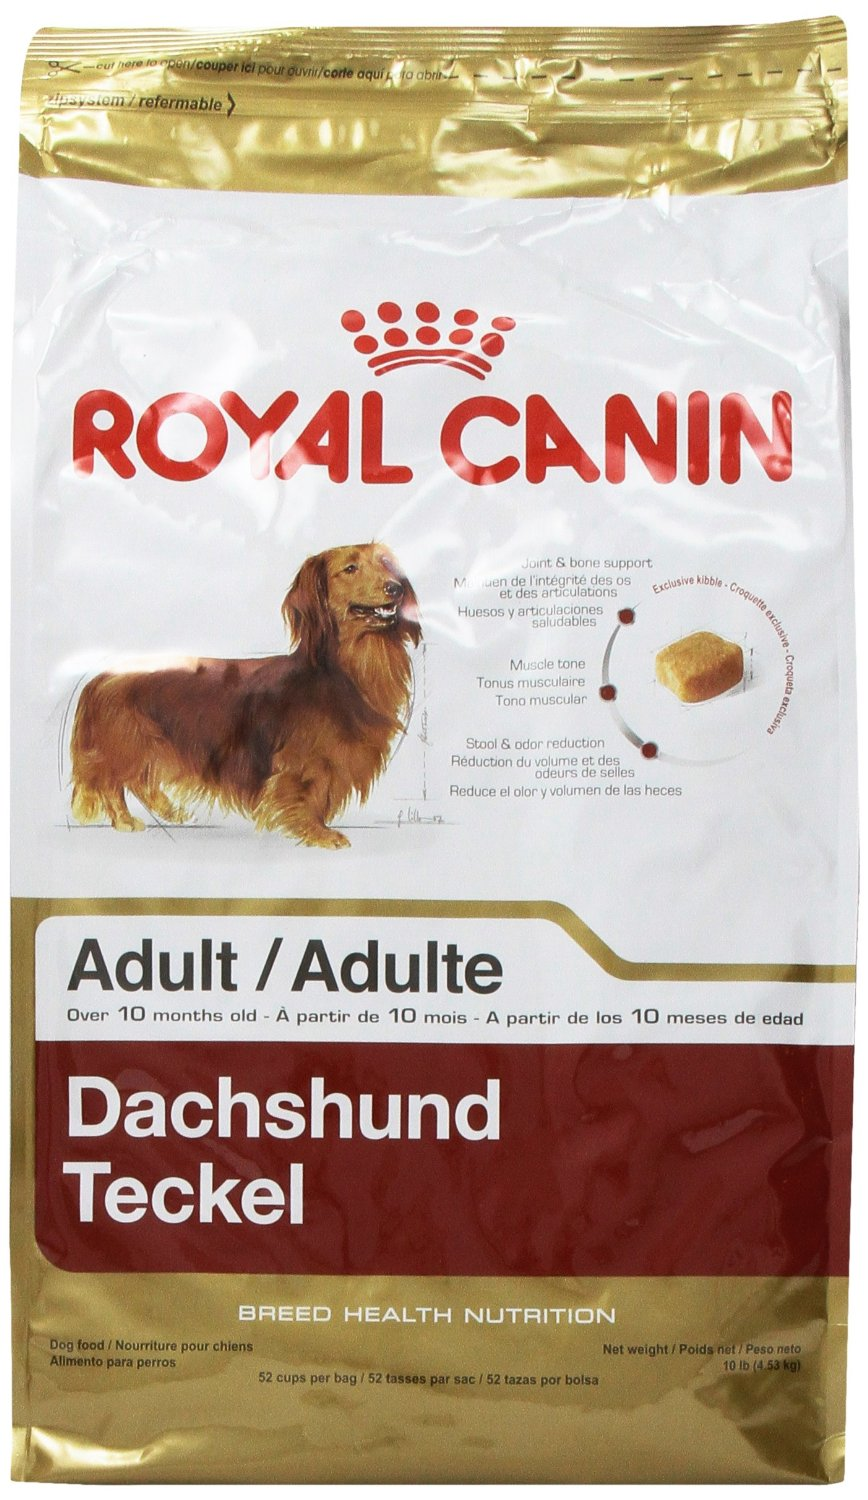 Royal Canin Dachshund Dog Food